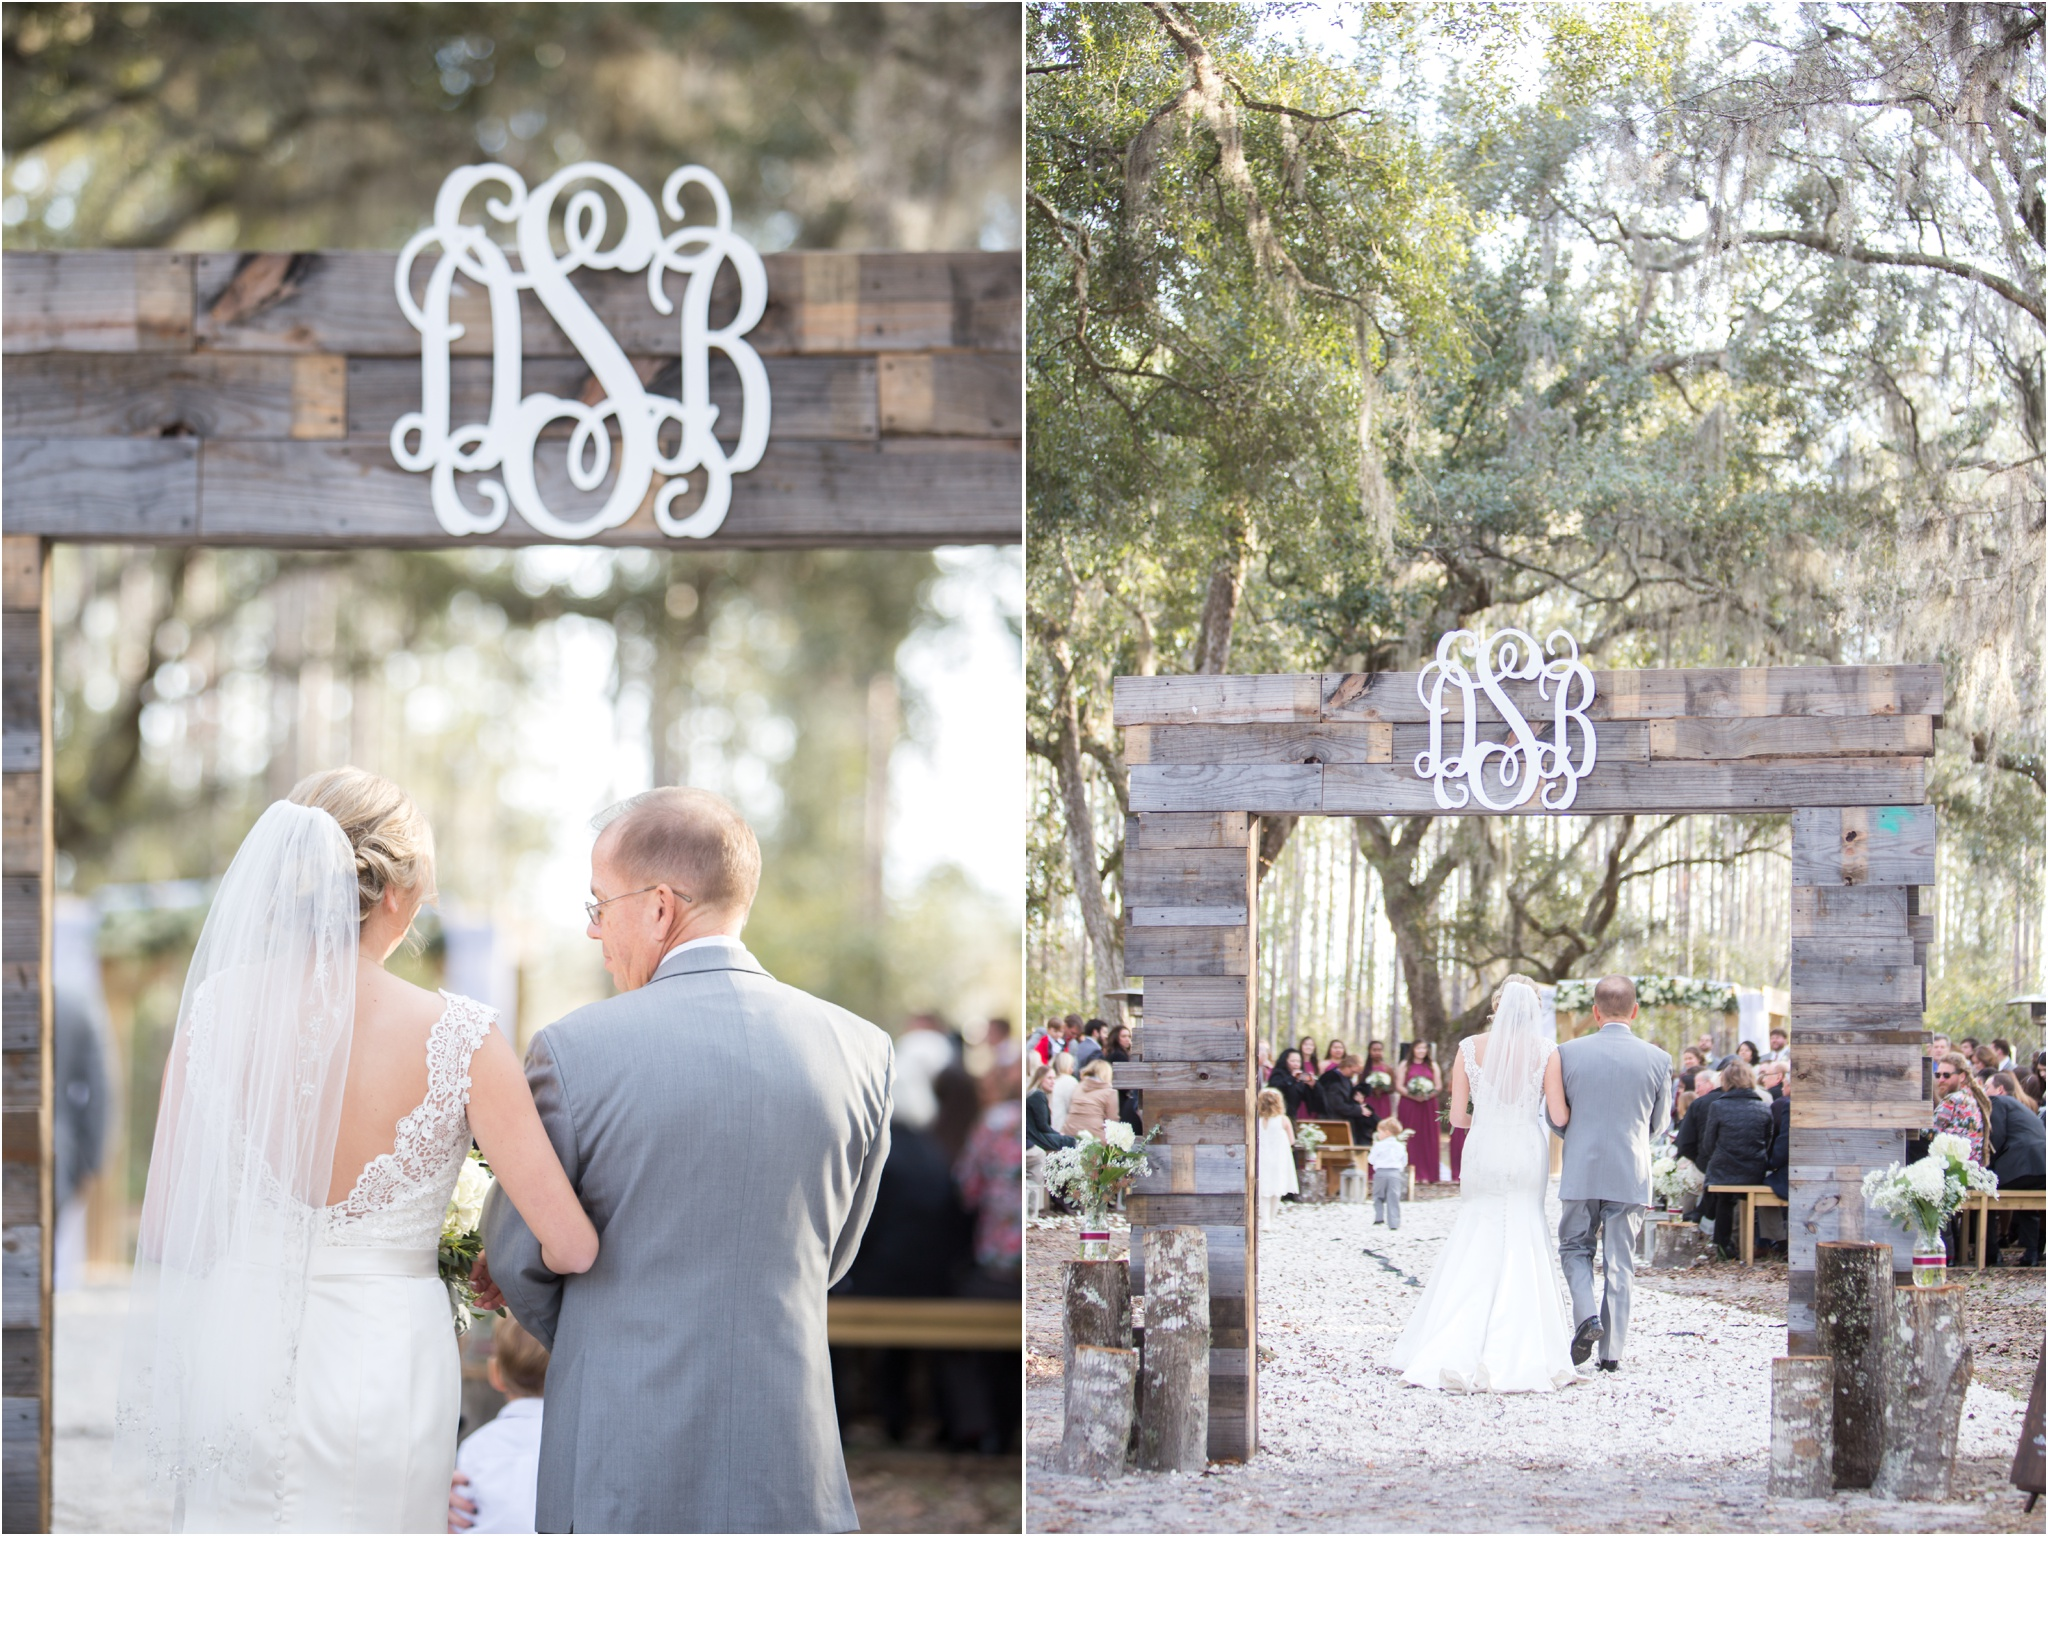 Rainey_Gregg_Photography_St._Simons_Island_Georgia_California_Wedding_Portrait_Photography_0535.jpg